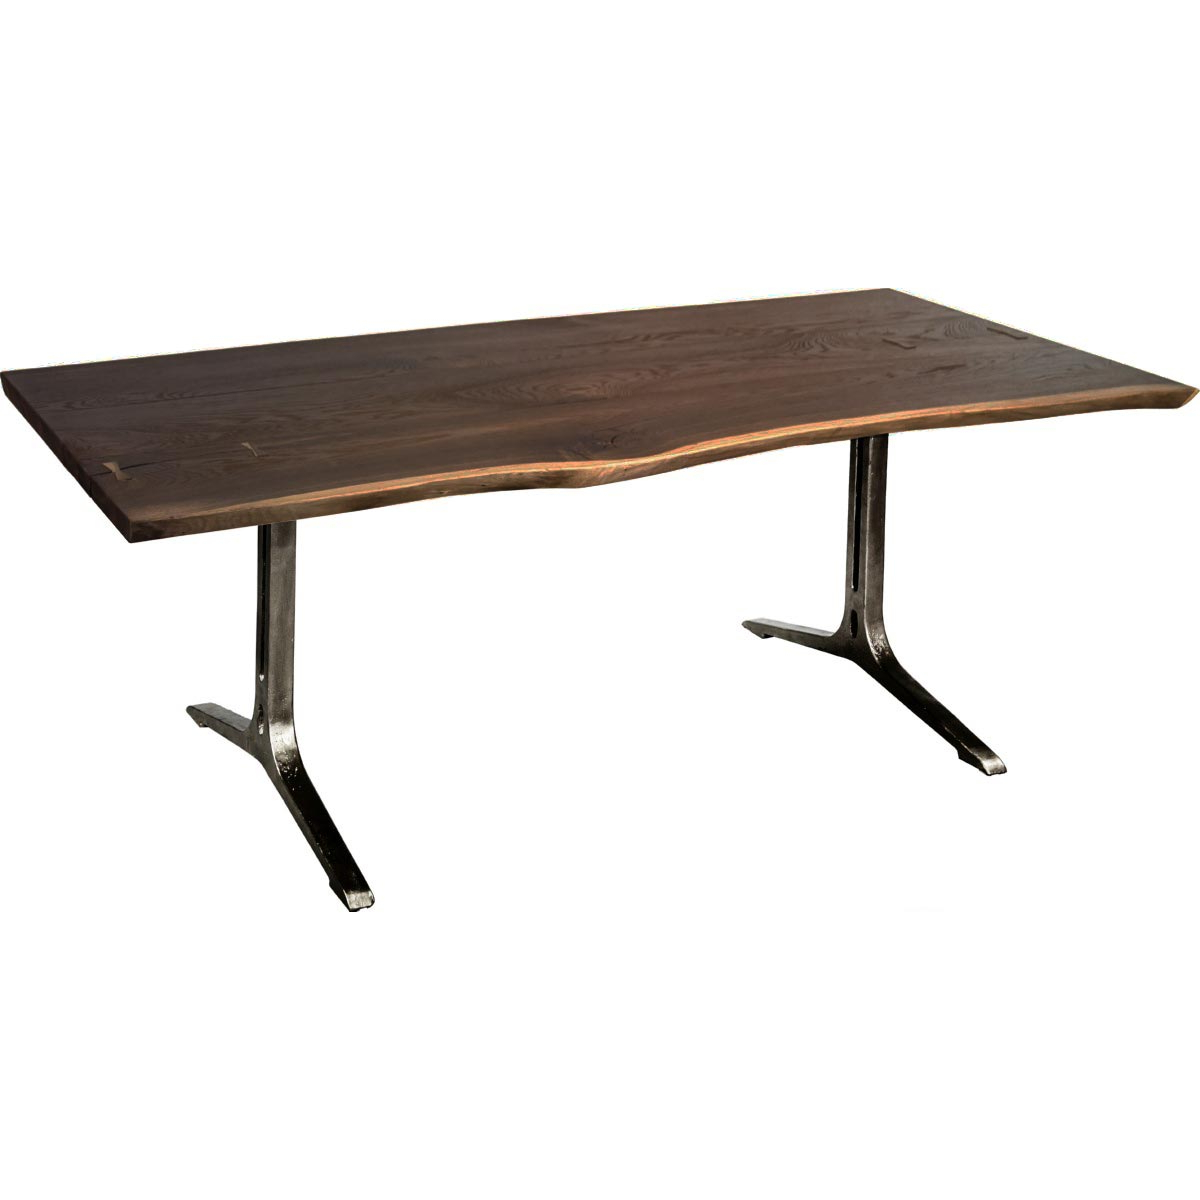 "Dining Tables In Seared Oak With Brass Detail regarding Most Popular Nuevo Samara 78"" Dining Table Live Edge Seared Oak Top Black"